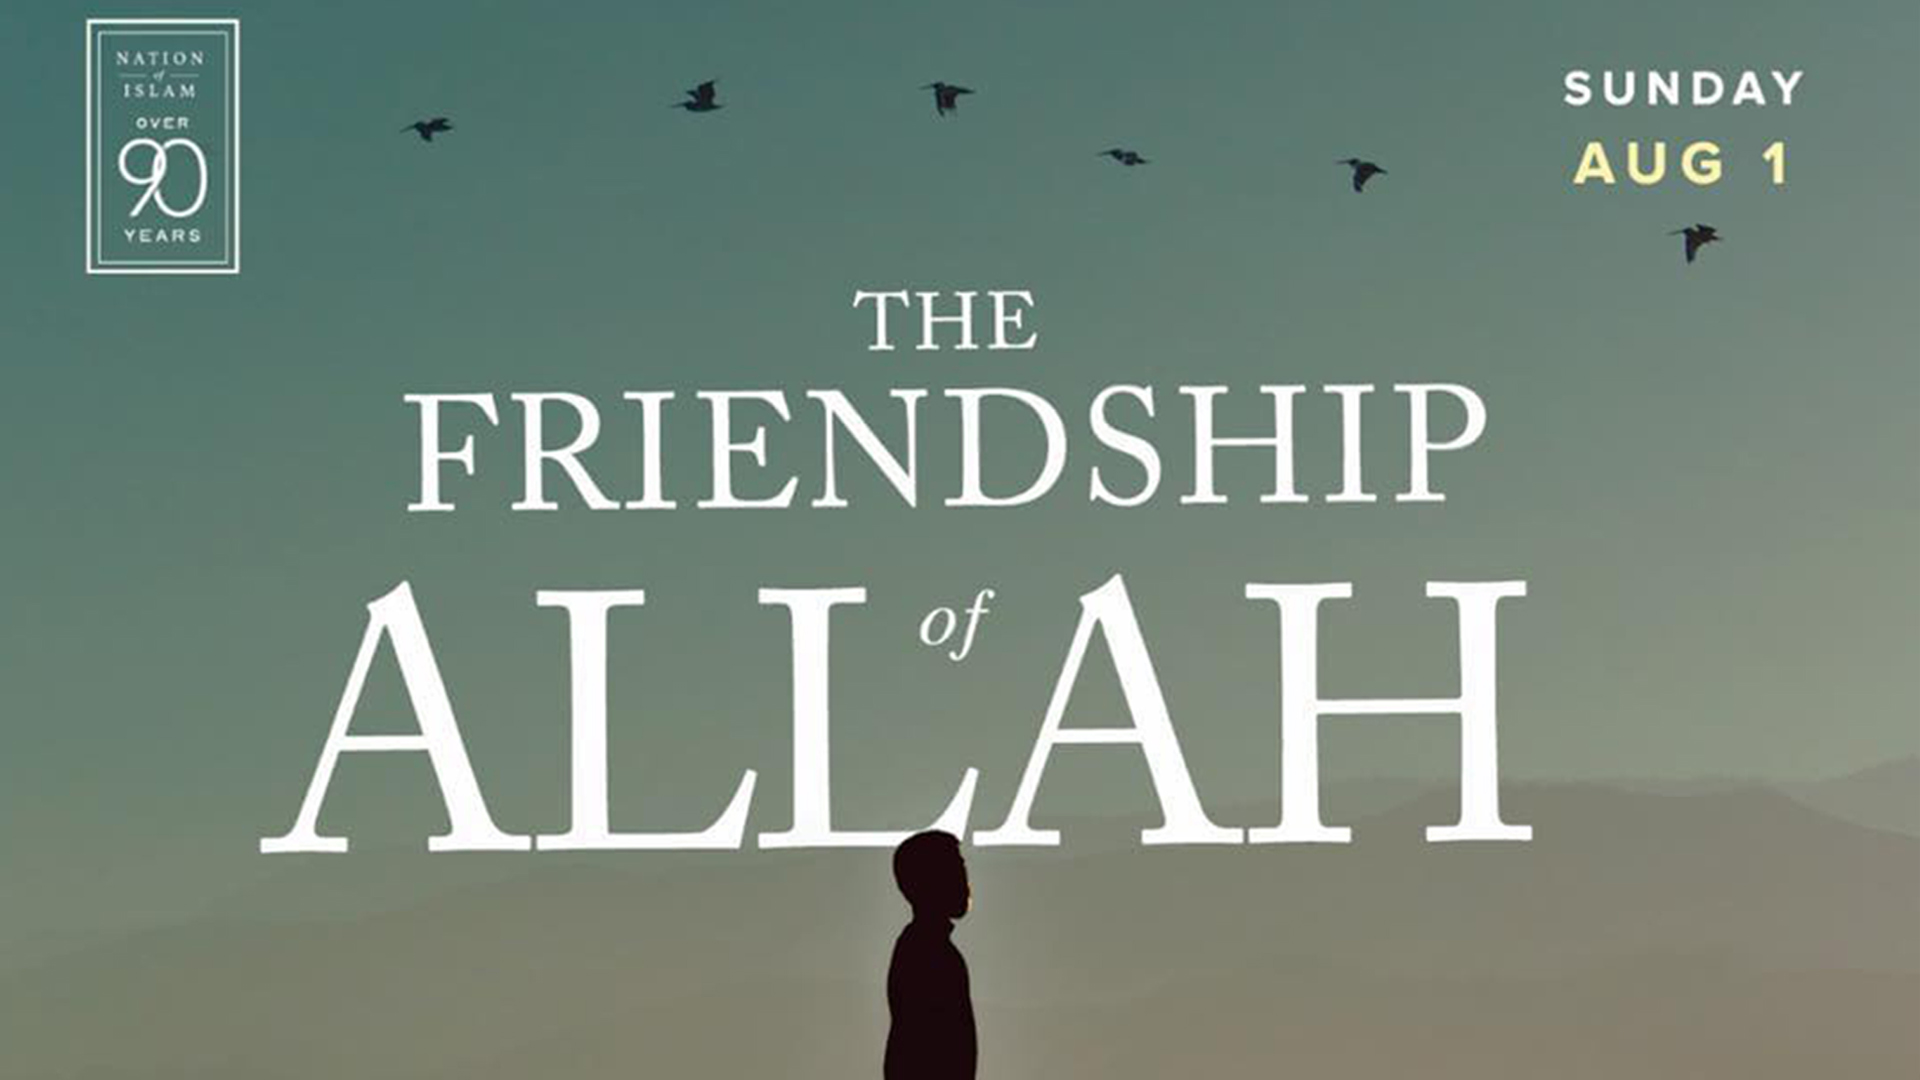 The Friendship of Allah